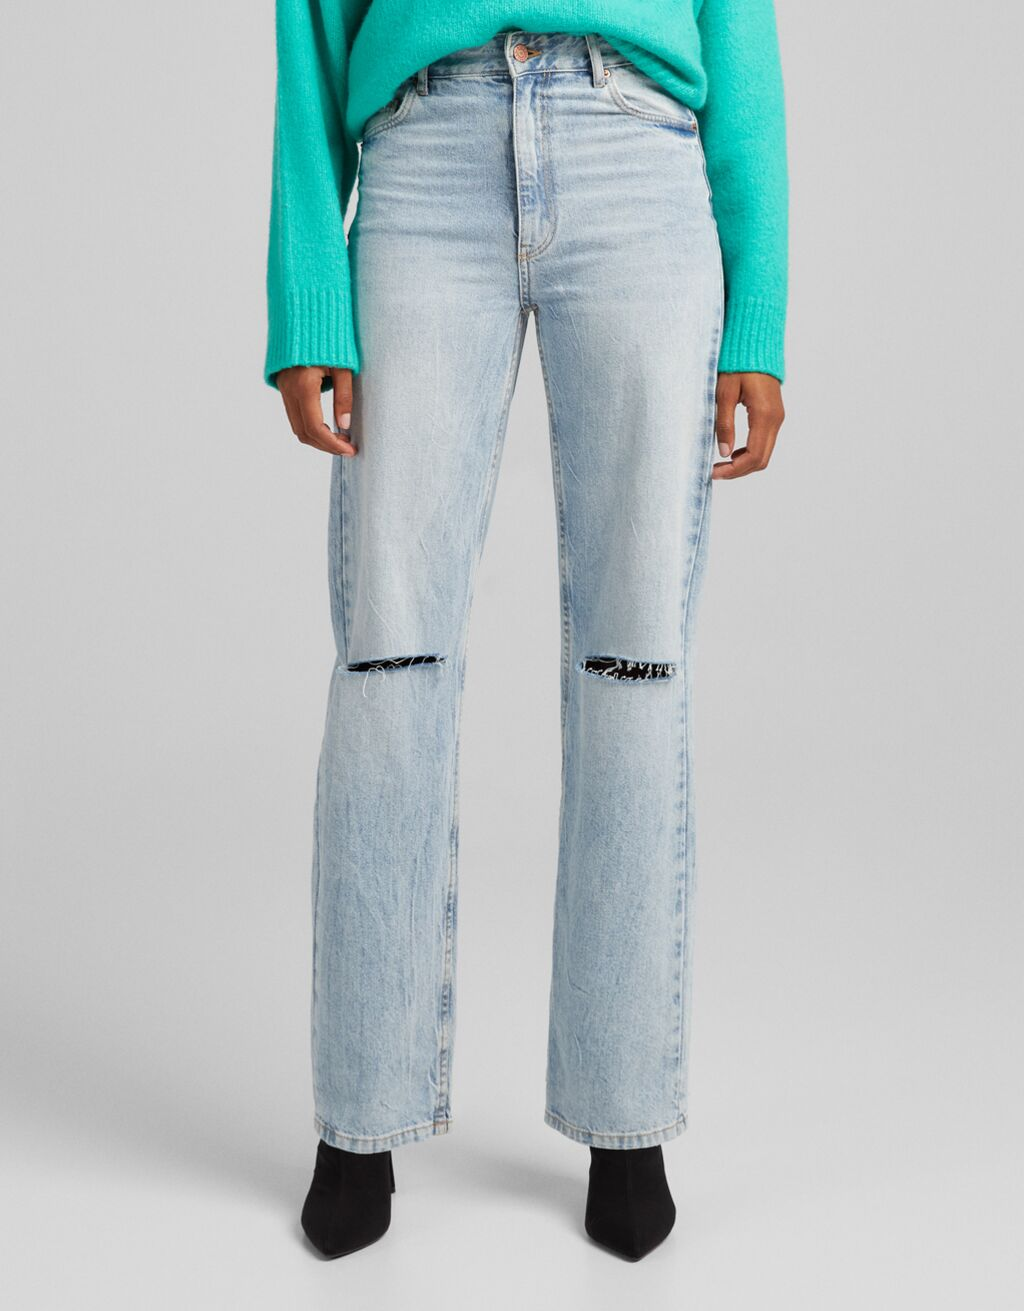 Straight fit high waist jeans with rips